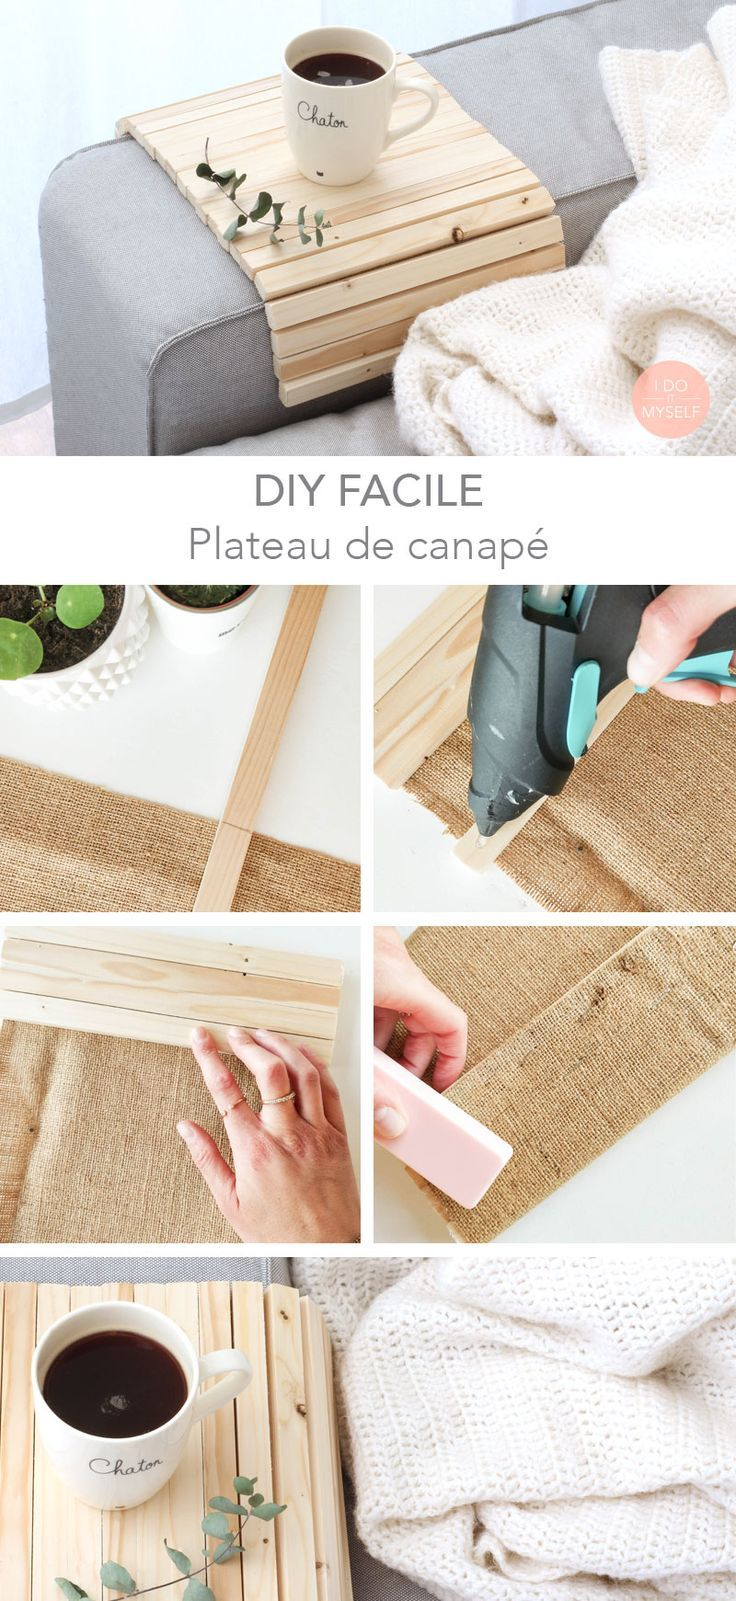 WOOD DIY : Create a nice couch arm wrap! DIY BOIS …